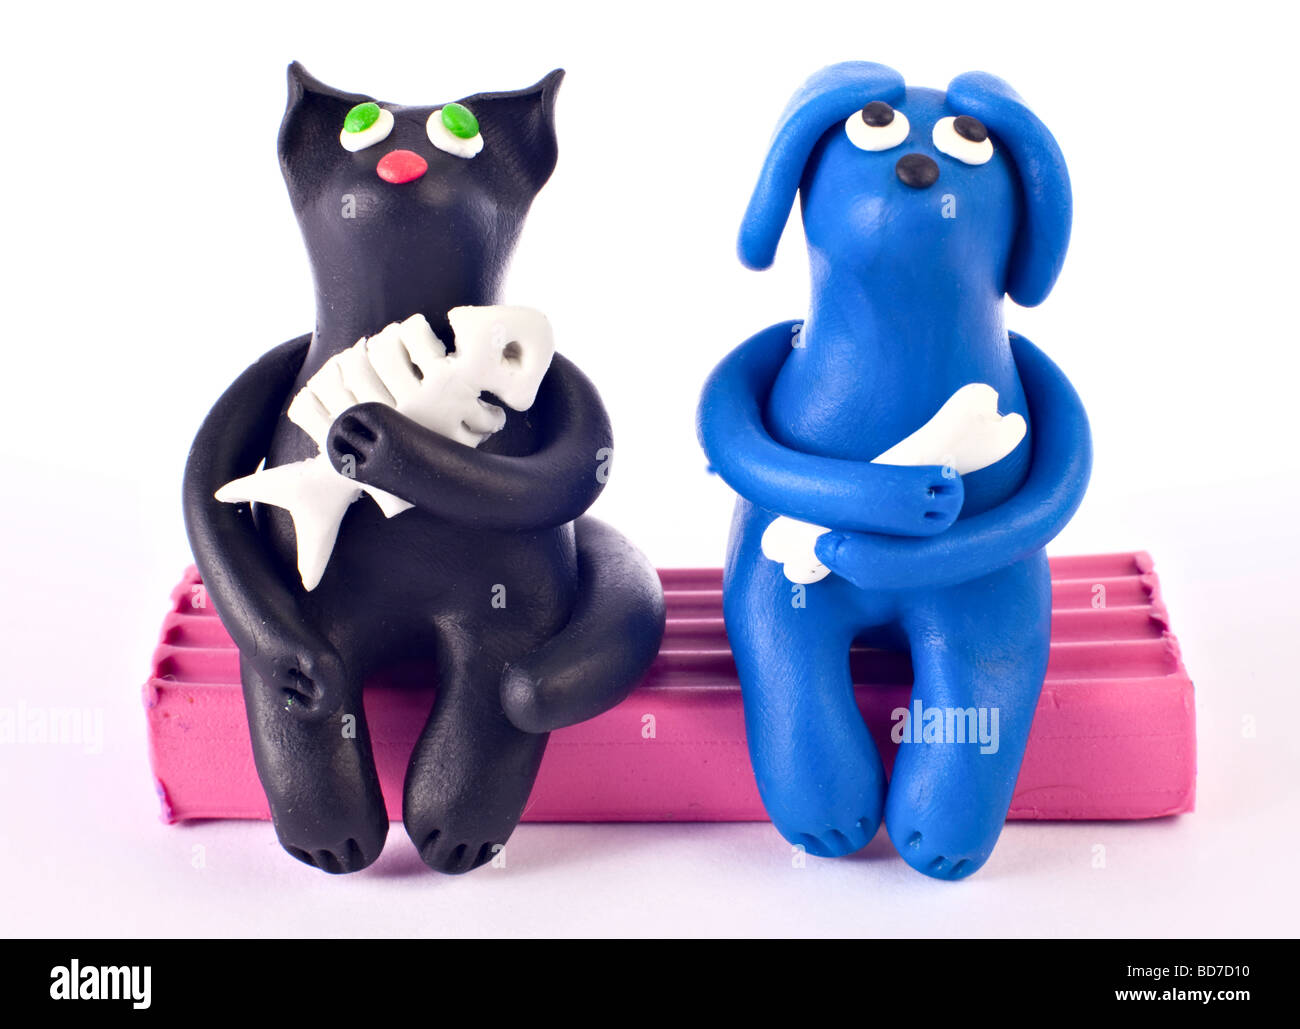 Plasticine cat and dog sitting and dreaming together - Stock Image